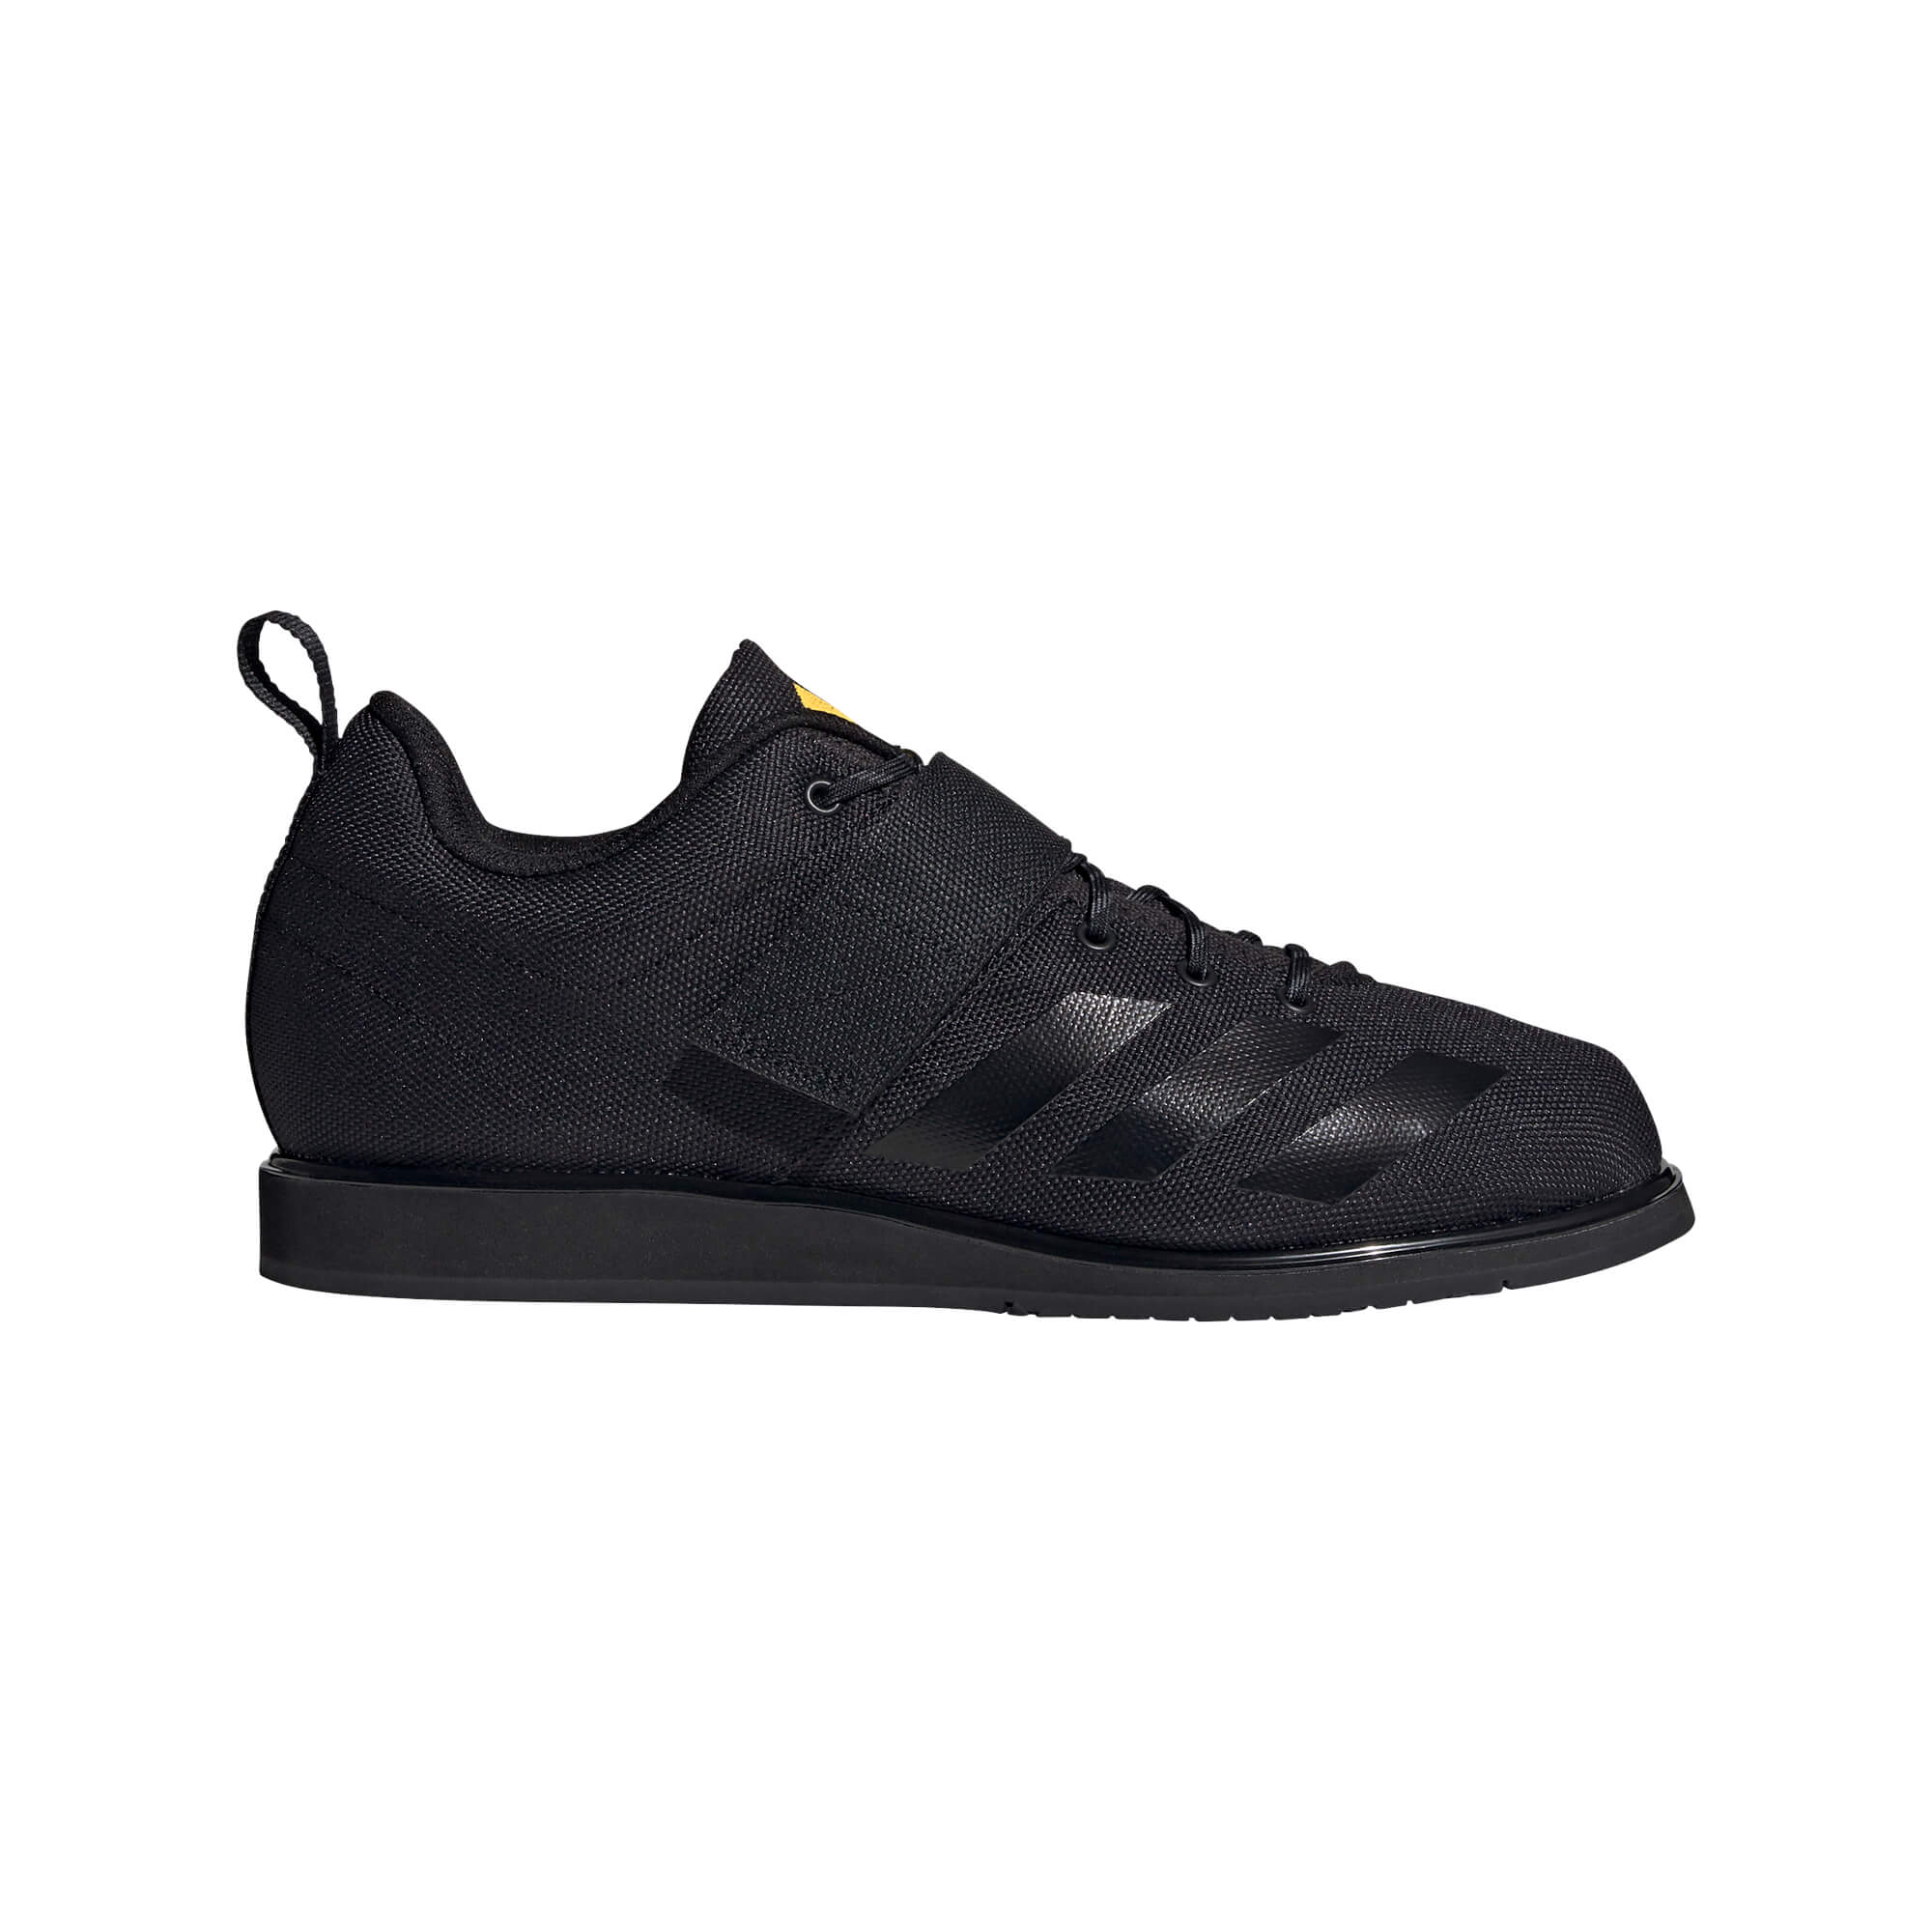 Adidas weightlifting schoen powerlift 4